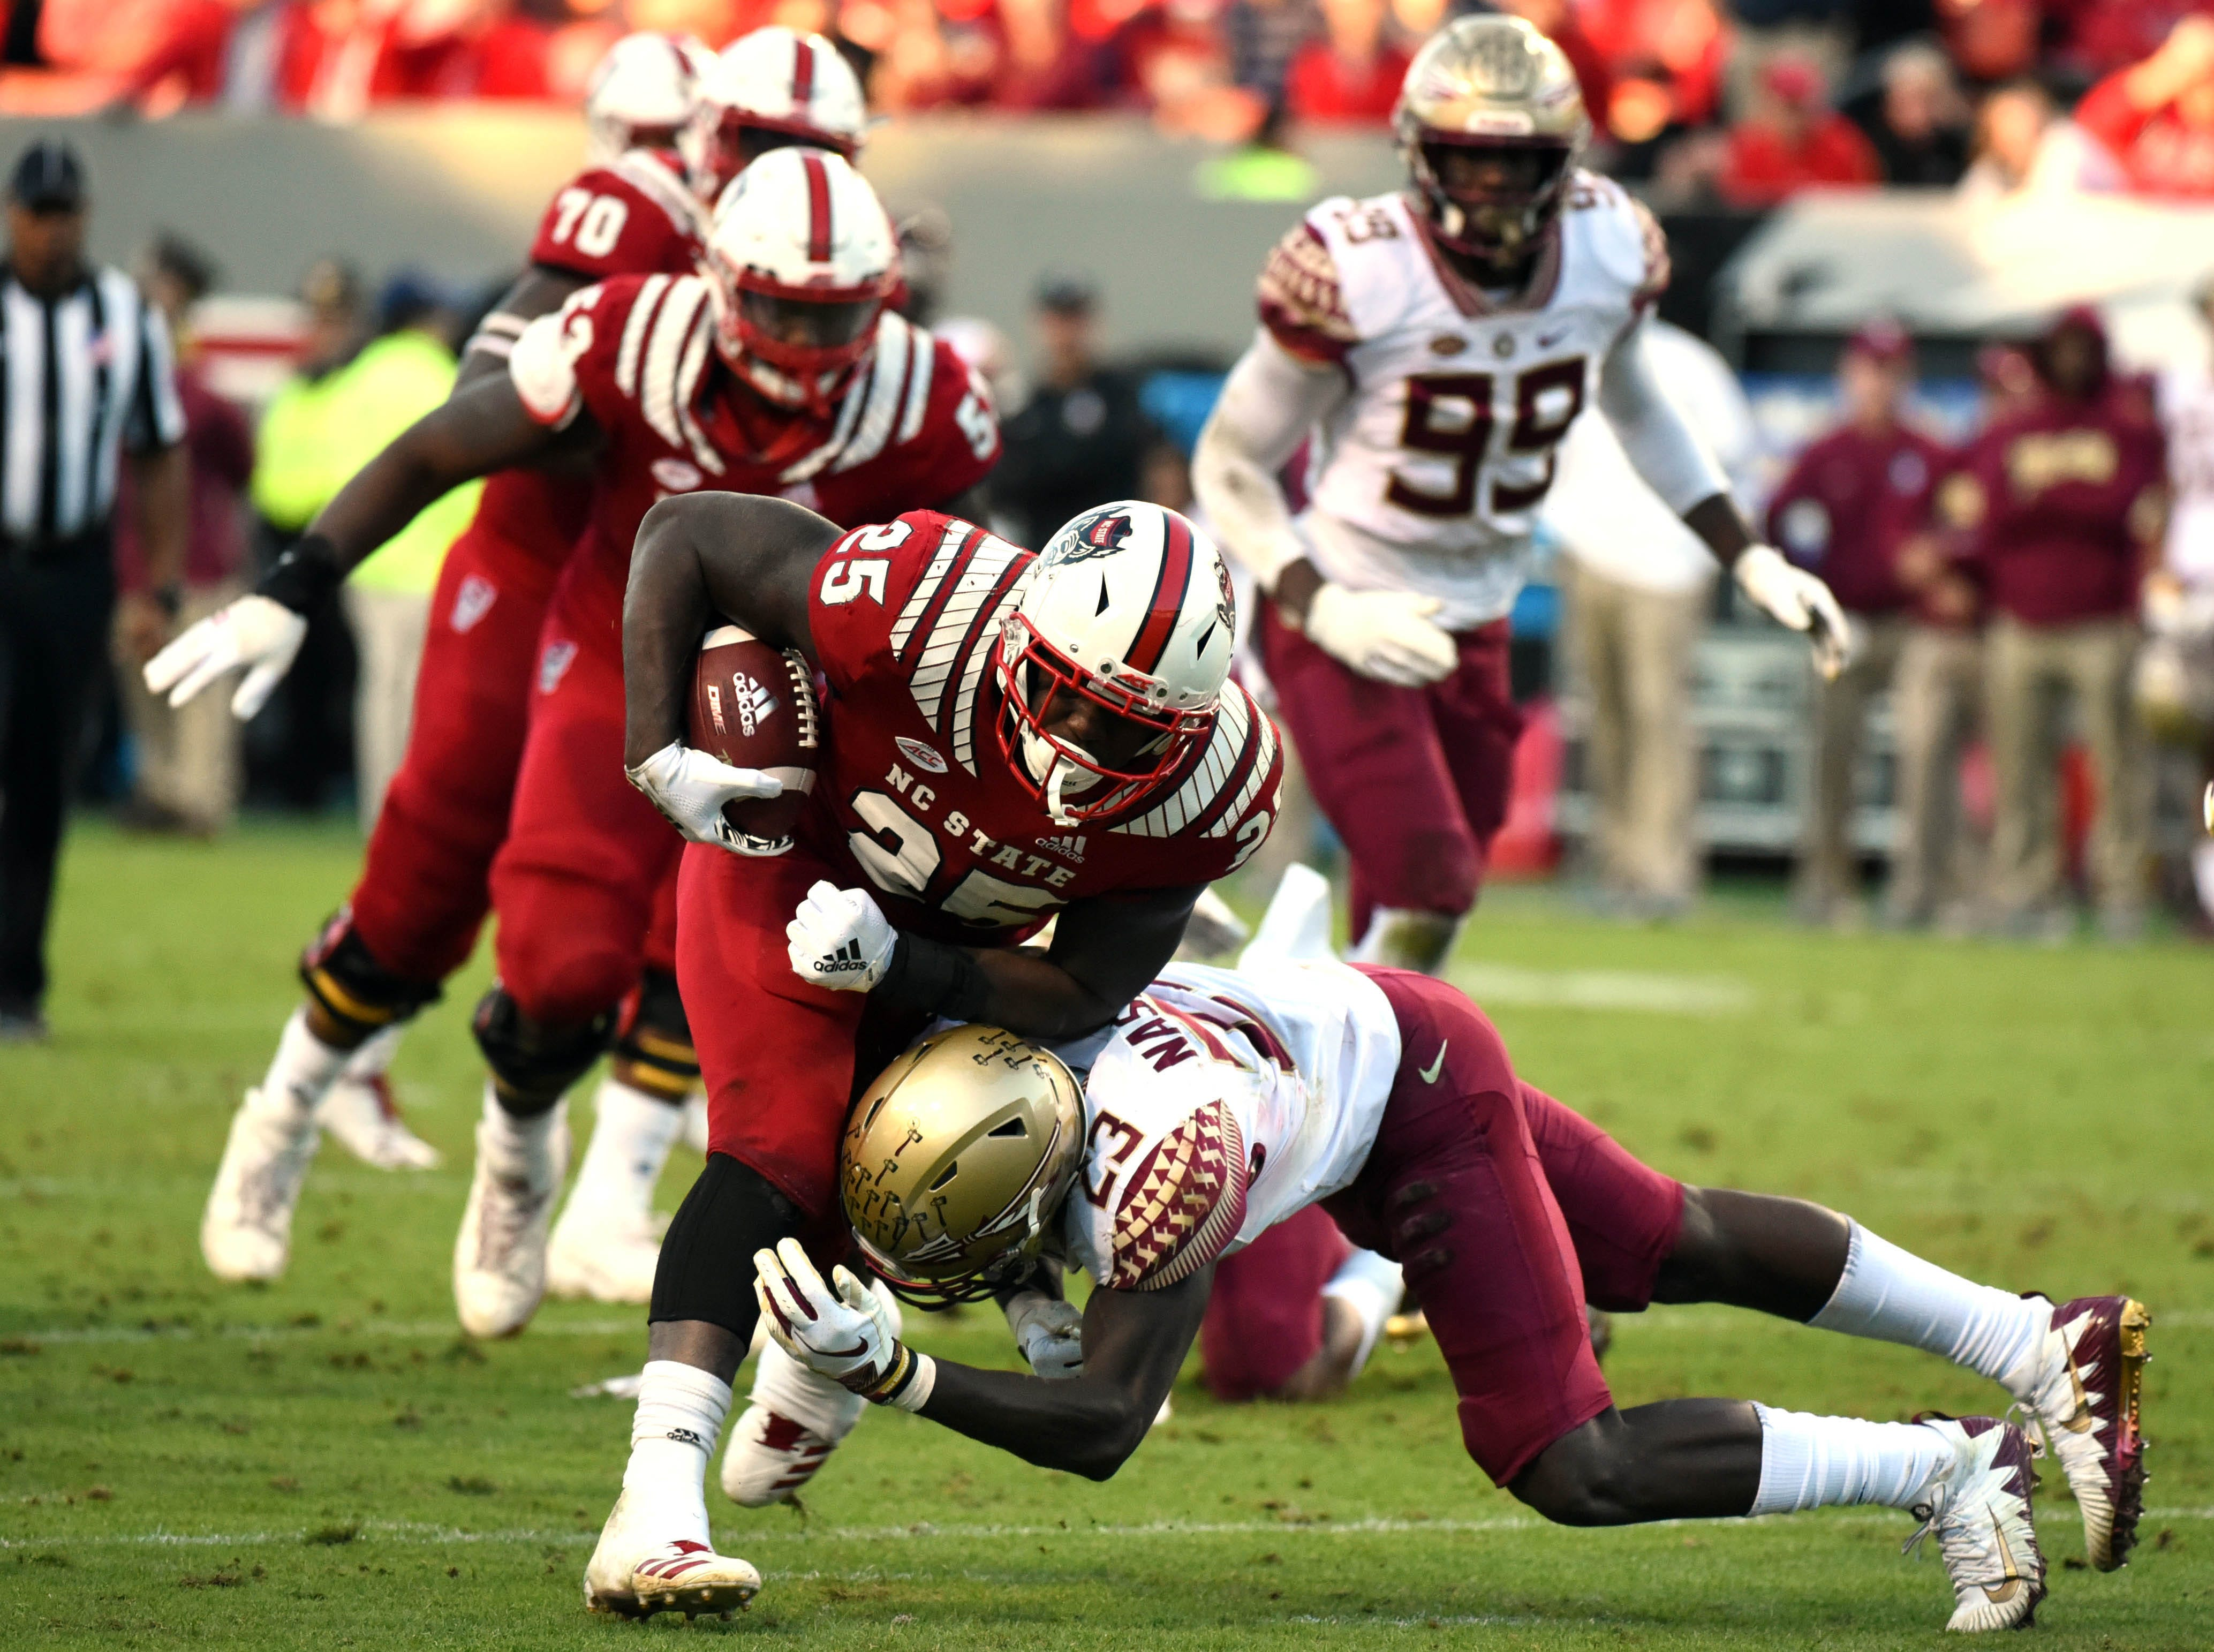 Nov 3, 2018; Raleigh, NC, USA; North Carolina State Wolfpack running back Reggie Gallaspy Jr. (25) is tackled by Florida State Seminoles defensive back Hamsah Masirildeen (23) during the second half at Carter-Finley Stadium.  The Wolfpack won 47-28.  Mandatory Credit: Rob Kinnan-USA TODAY Sports